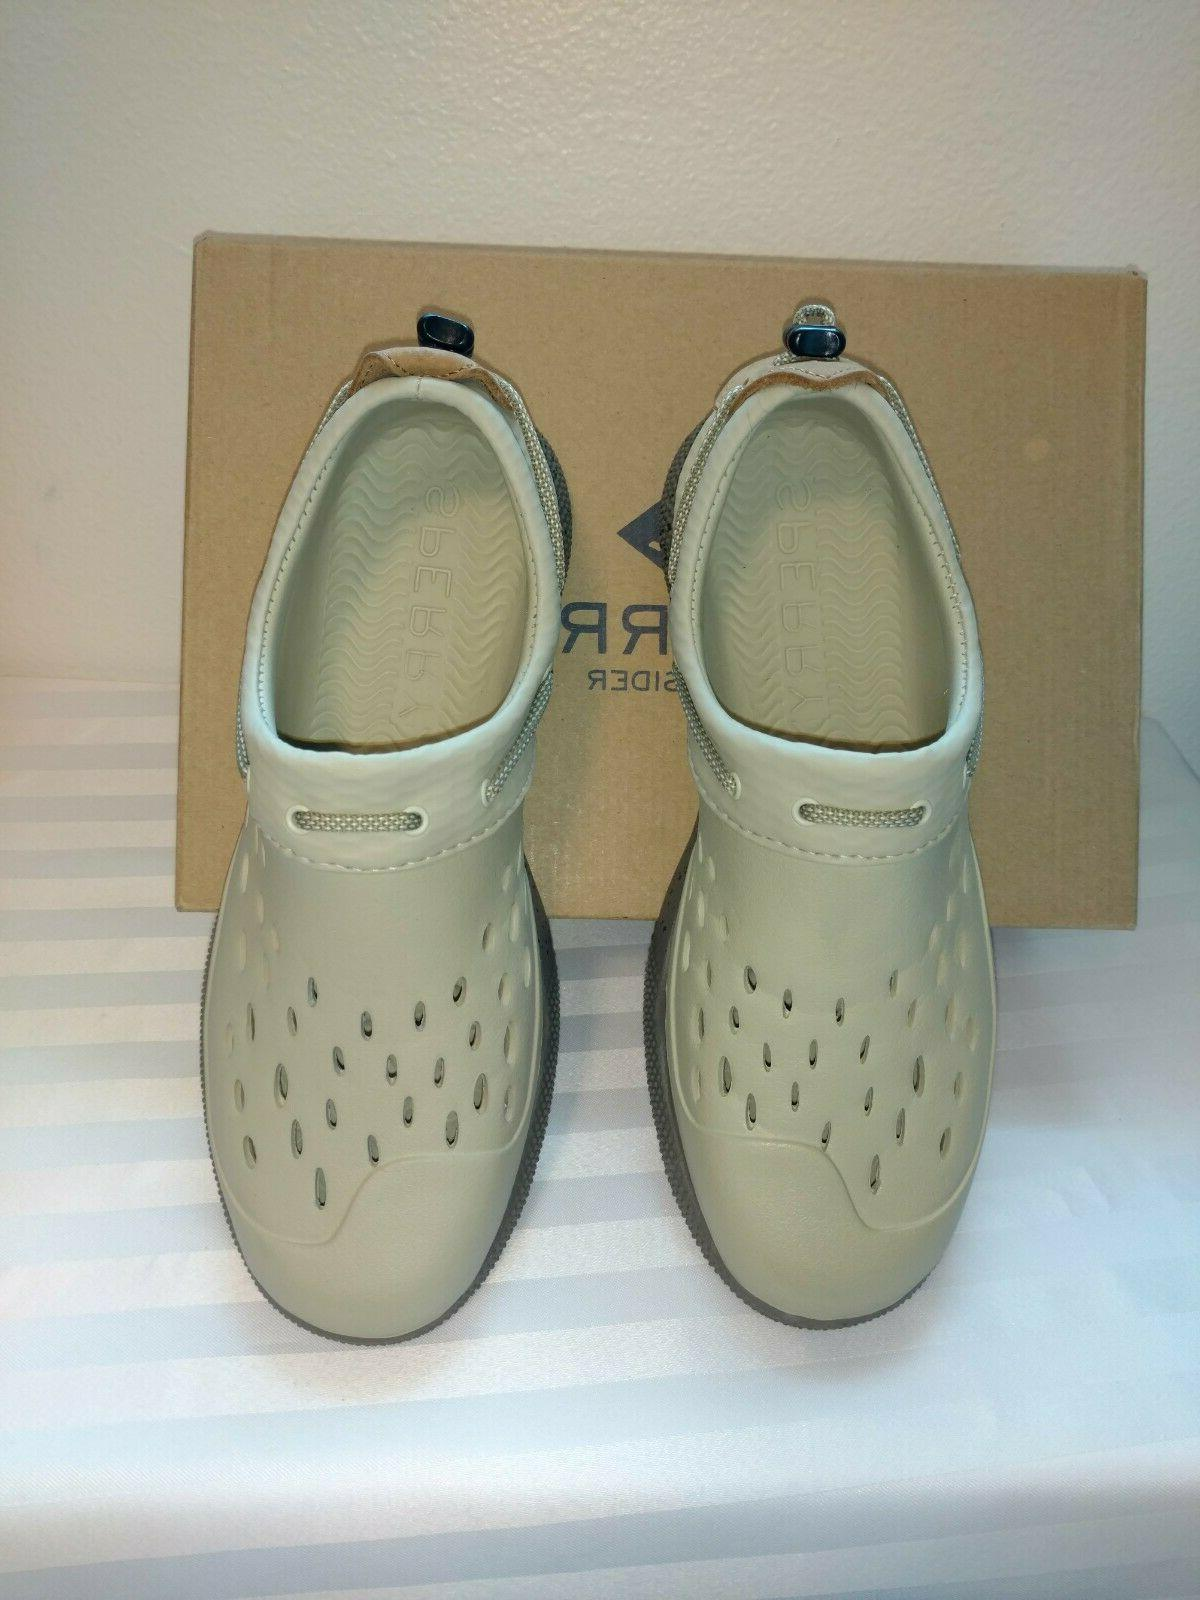 New Men's 8M Top-Sider Seafront Men's Shoes